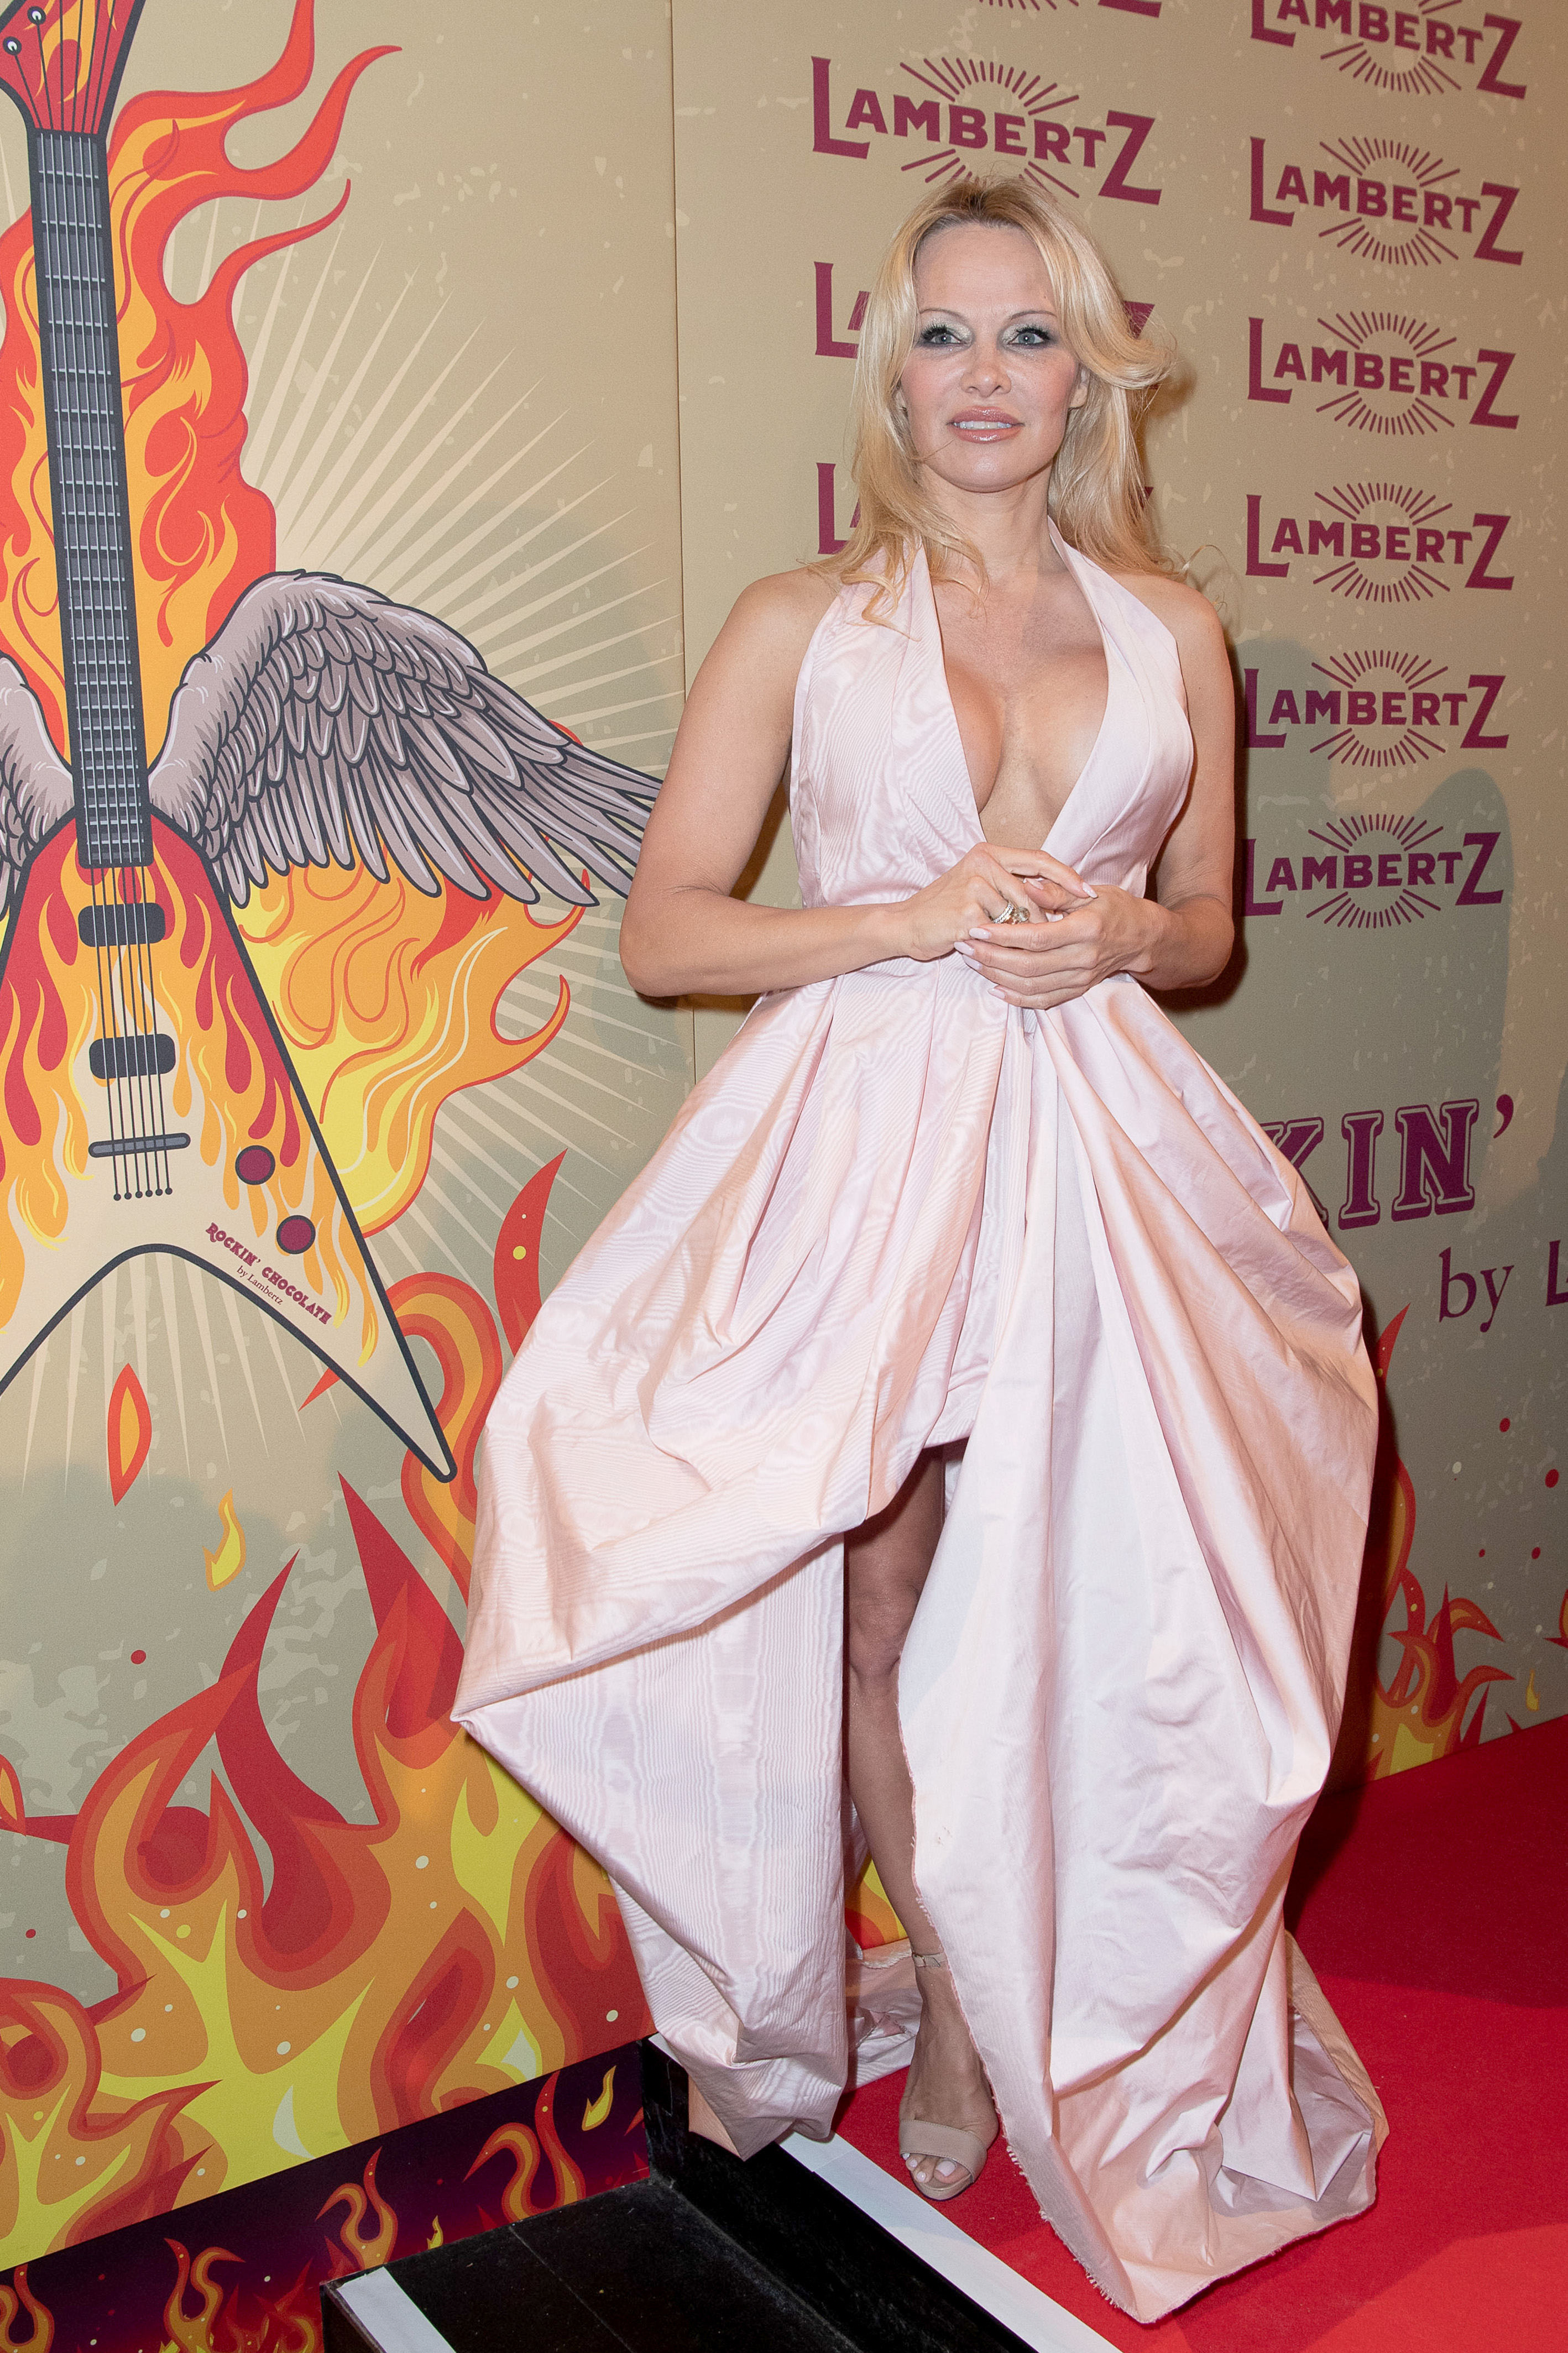 Pamela Anderson attends the Lambertz Monday Night in Cologne, Germany, on Jan. 28, 2019.